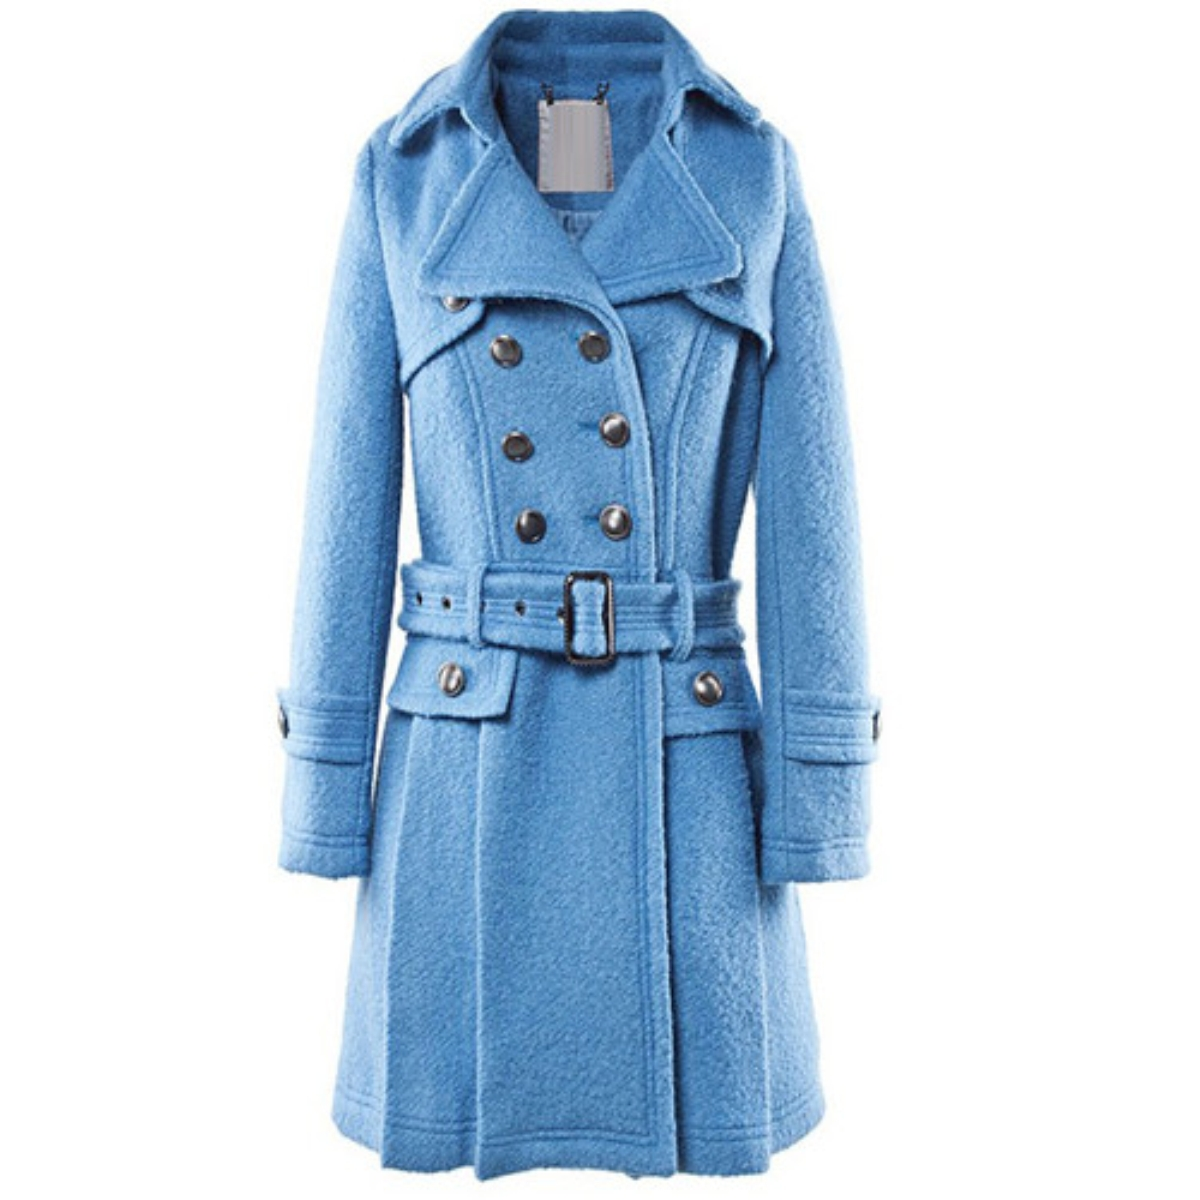 Lapel Double-Breasted Woolen Coat,Cheap in Wendybox.com